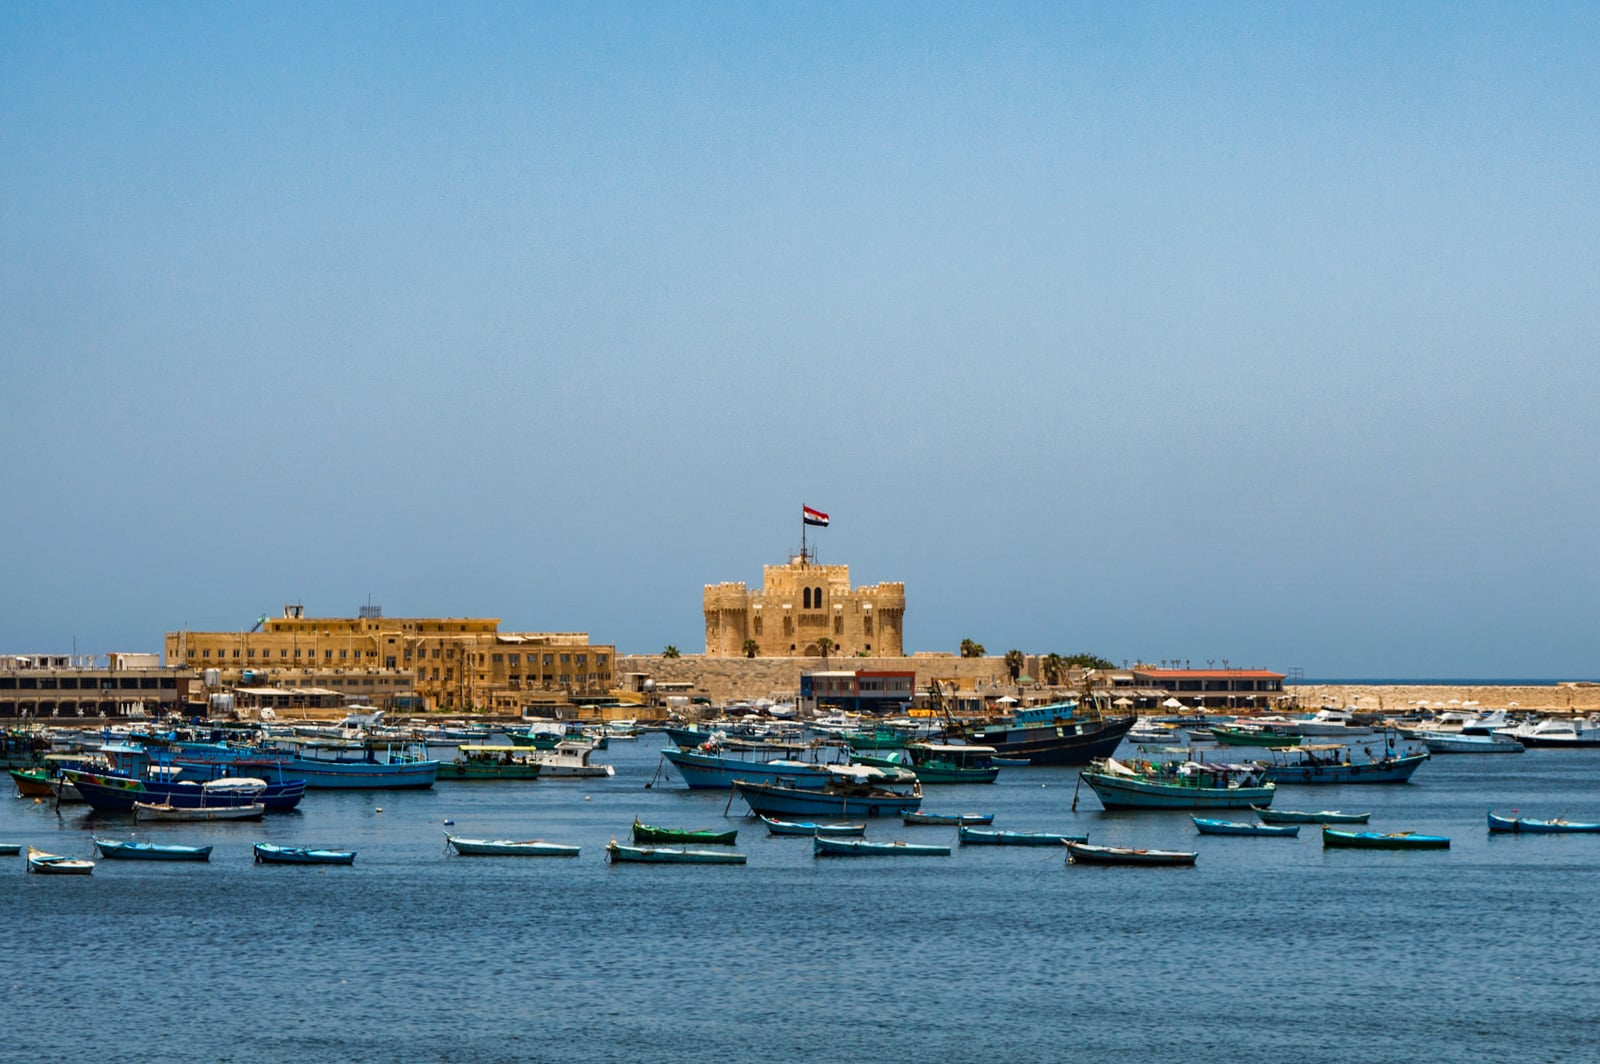 Fort Qaitbey, built where the Lighthouse of Alexandria once stood. Photo by ASaber91.